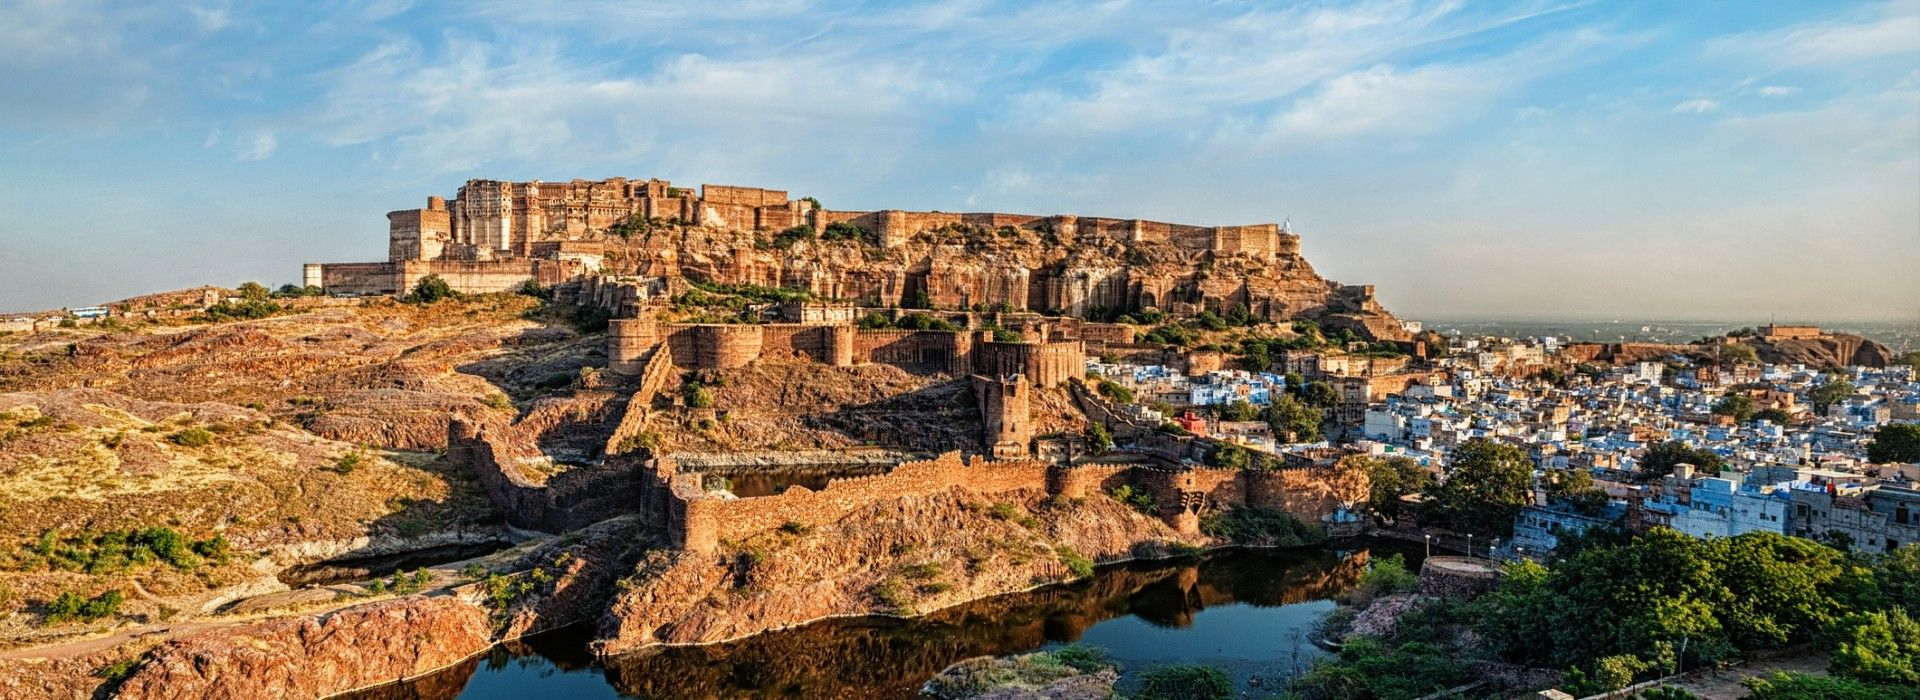 A fort on a hill surrounded by a water body and a village in Rajasthan